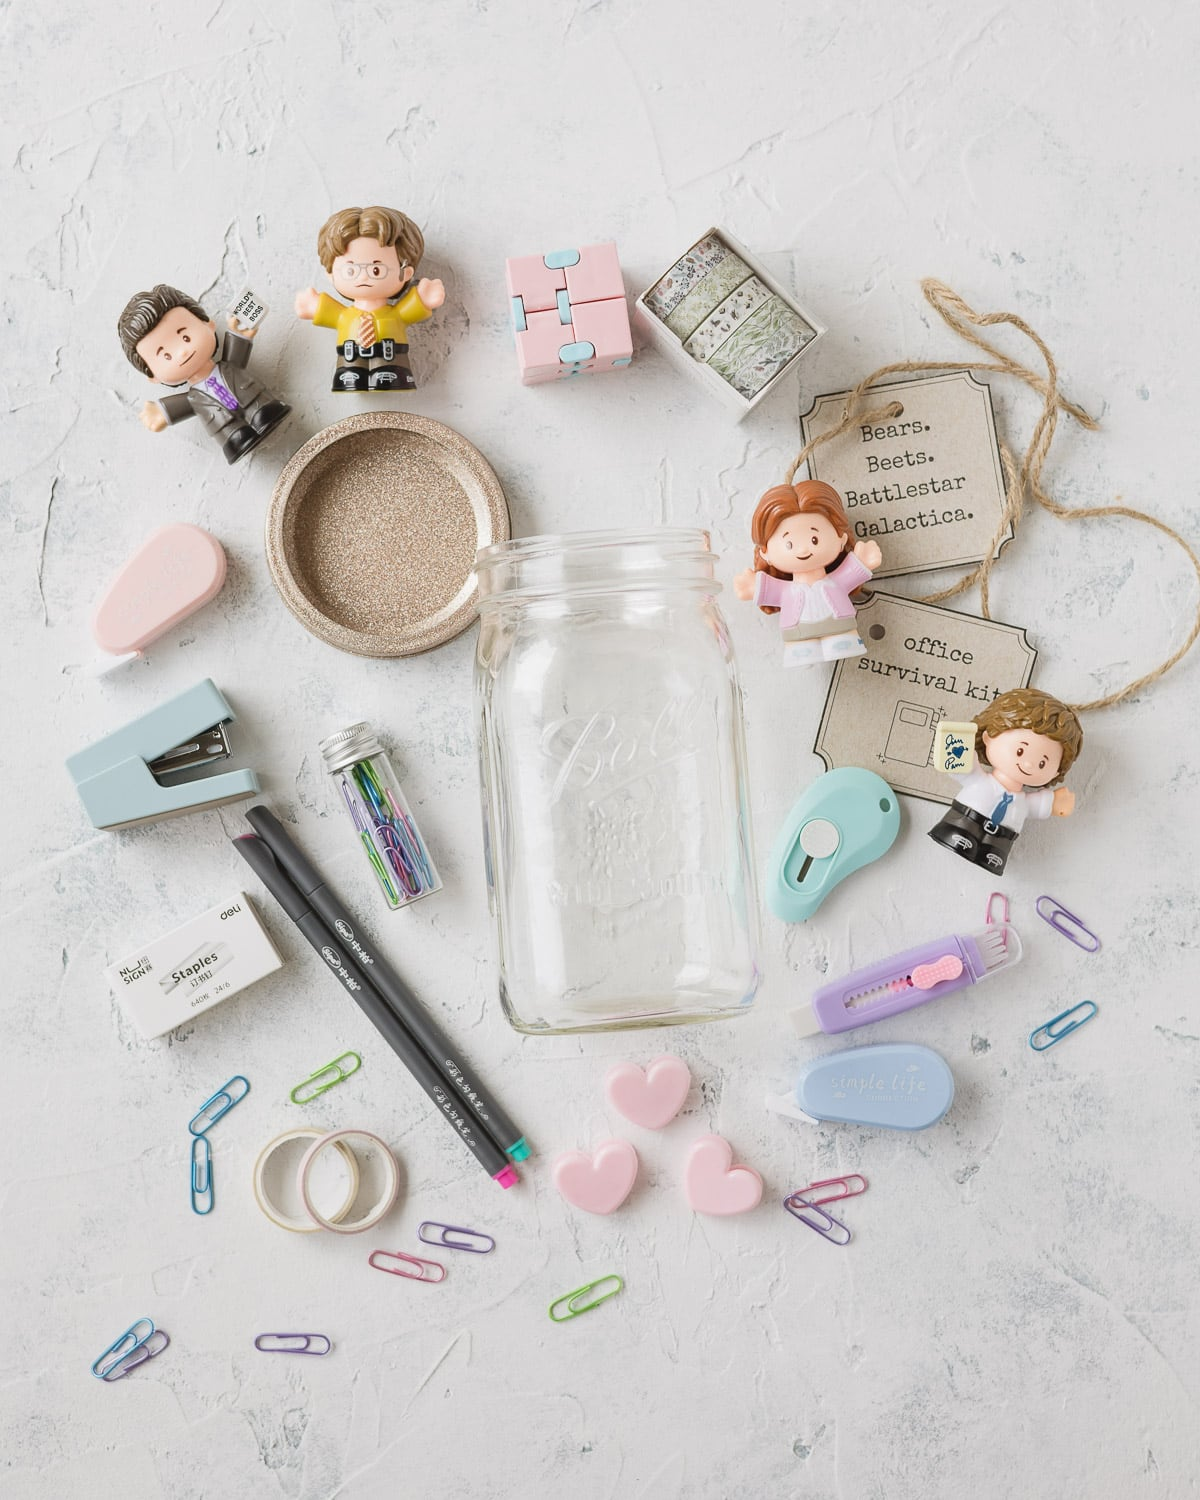 Paperclips, office supplies, Fisher Price Little People figures, and a mason jar.